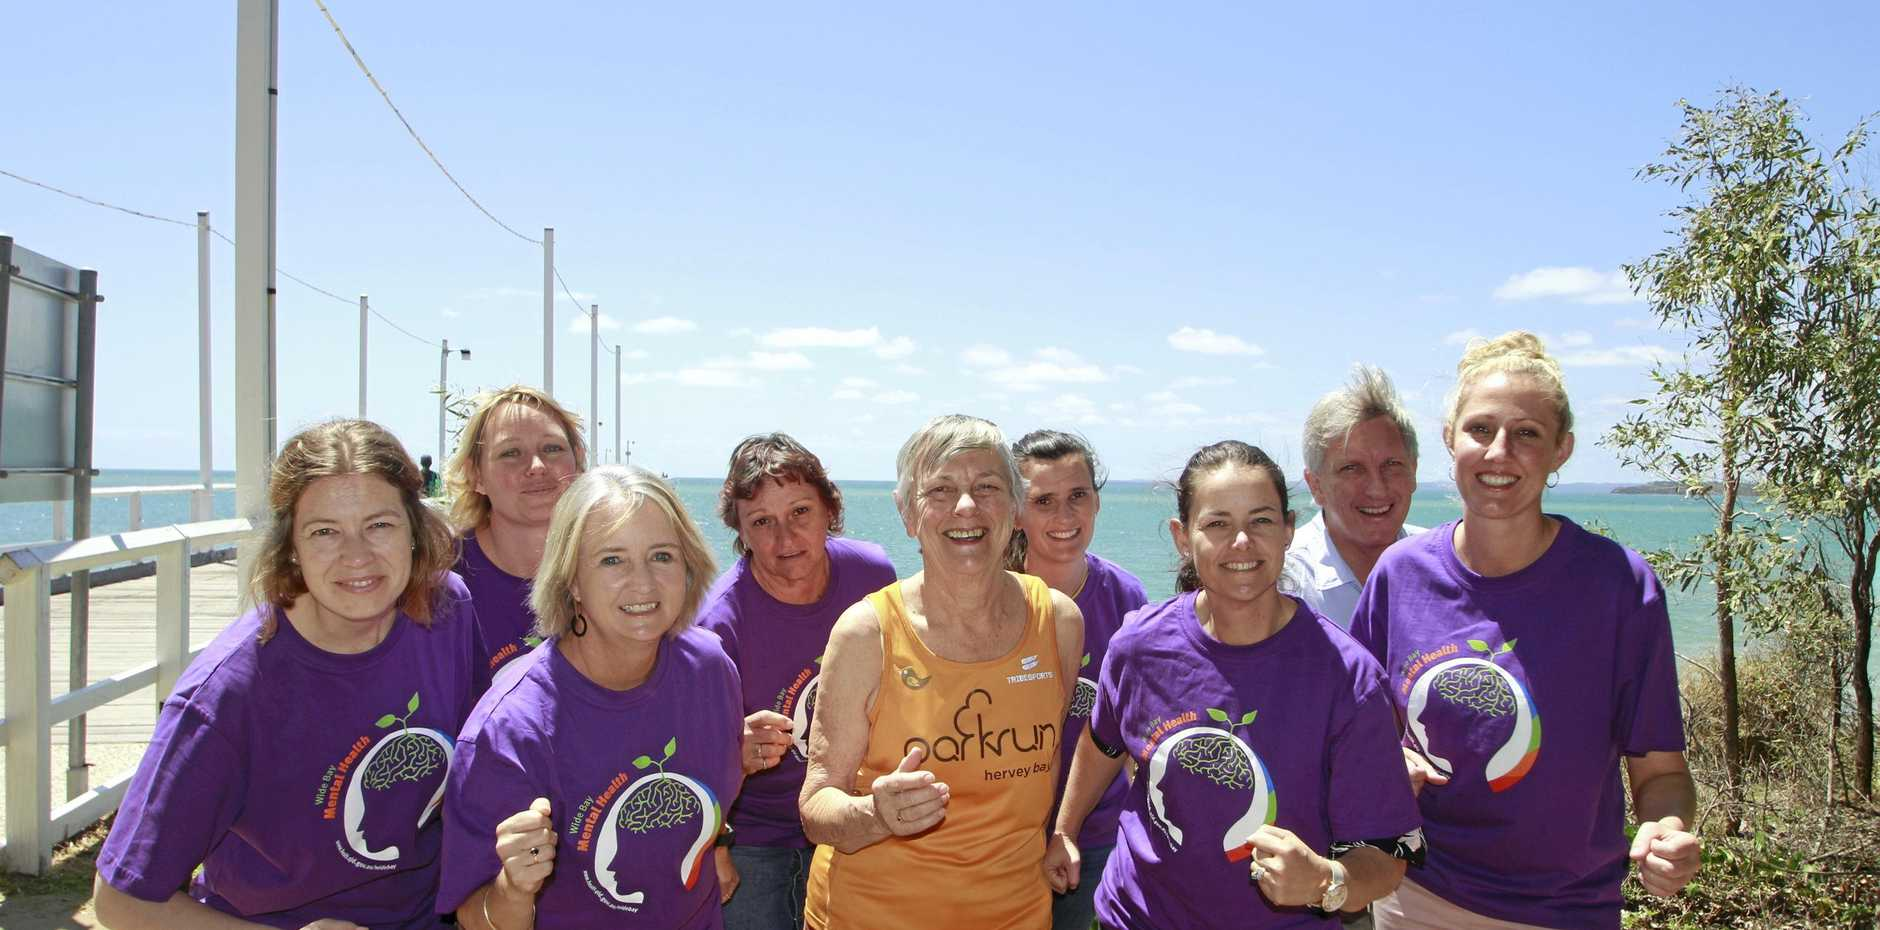 HEALTHY MINDS: The Urangan Pier will host one of many fun activities as part of Queensland Mental Health Week, with Alida Connell, Elnike Brand, Ruth O'Sullivan, Di Desousa, Stacey Cooper, Bill Rostedt, Amii Gardiner, Lyle Gronow and Fiona Prescott getting ready for the 5km walk/run with community group, parkrun.